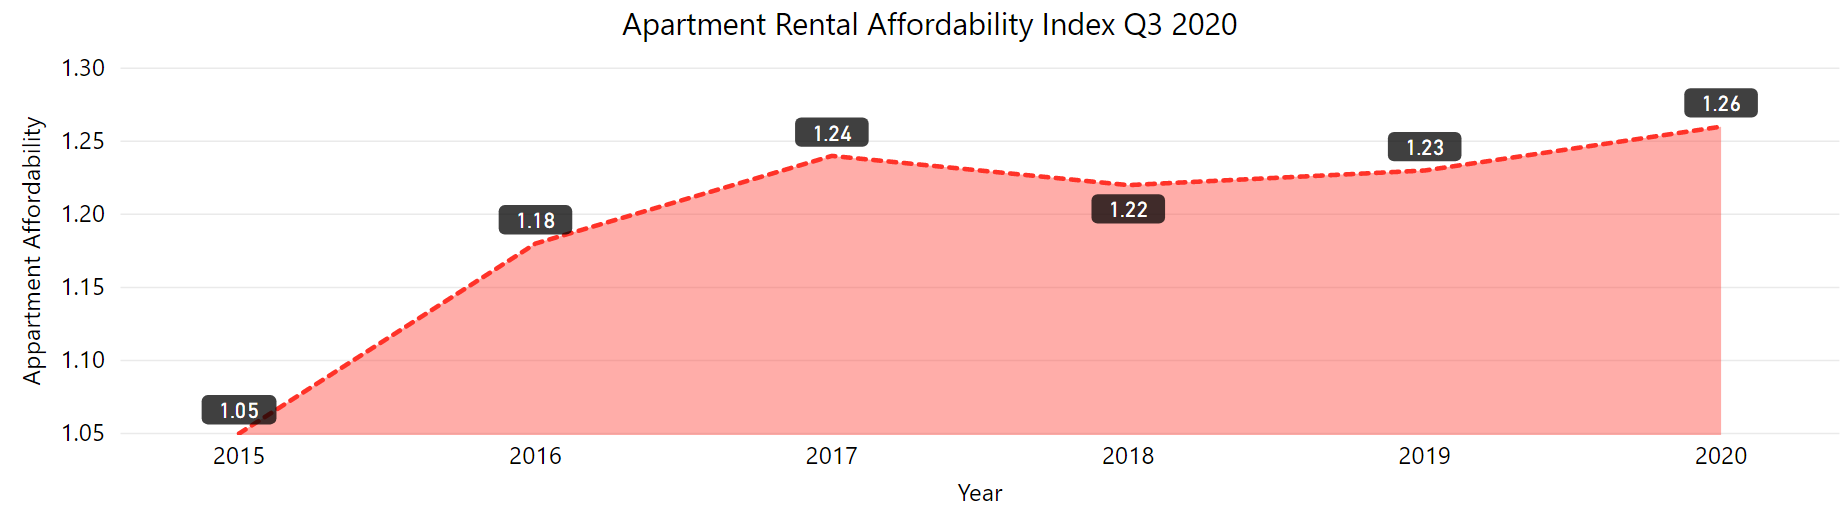 apartment rental affordability index from 2015 to 2020. The index has rises steadily from 2015 to 2020.